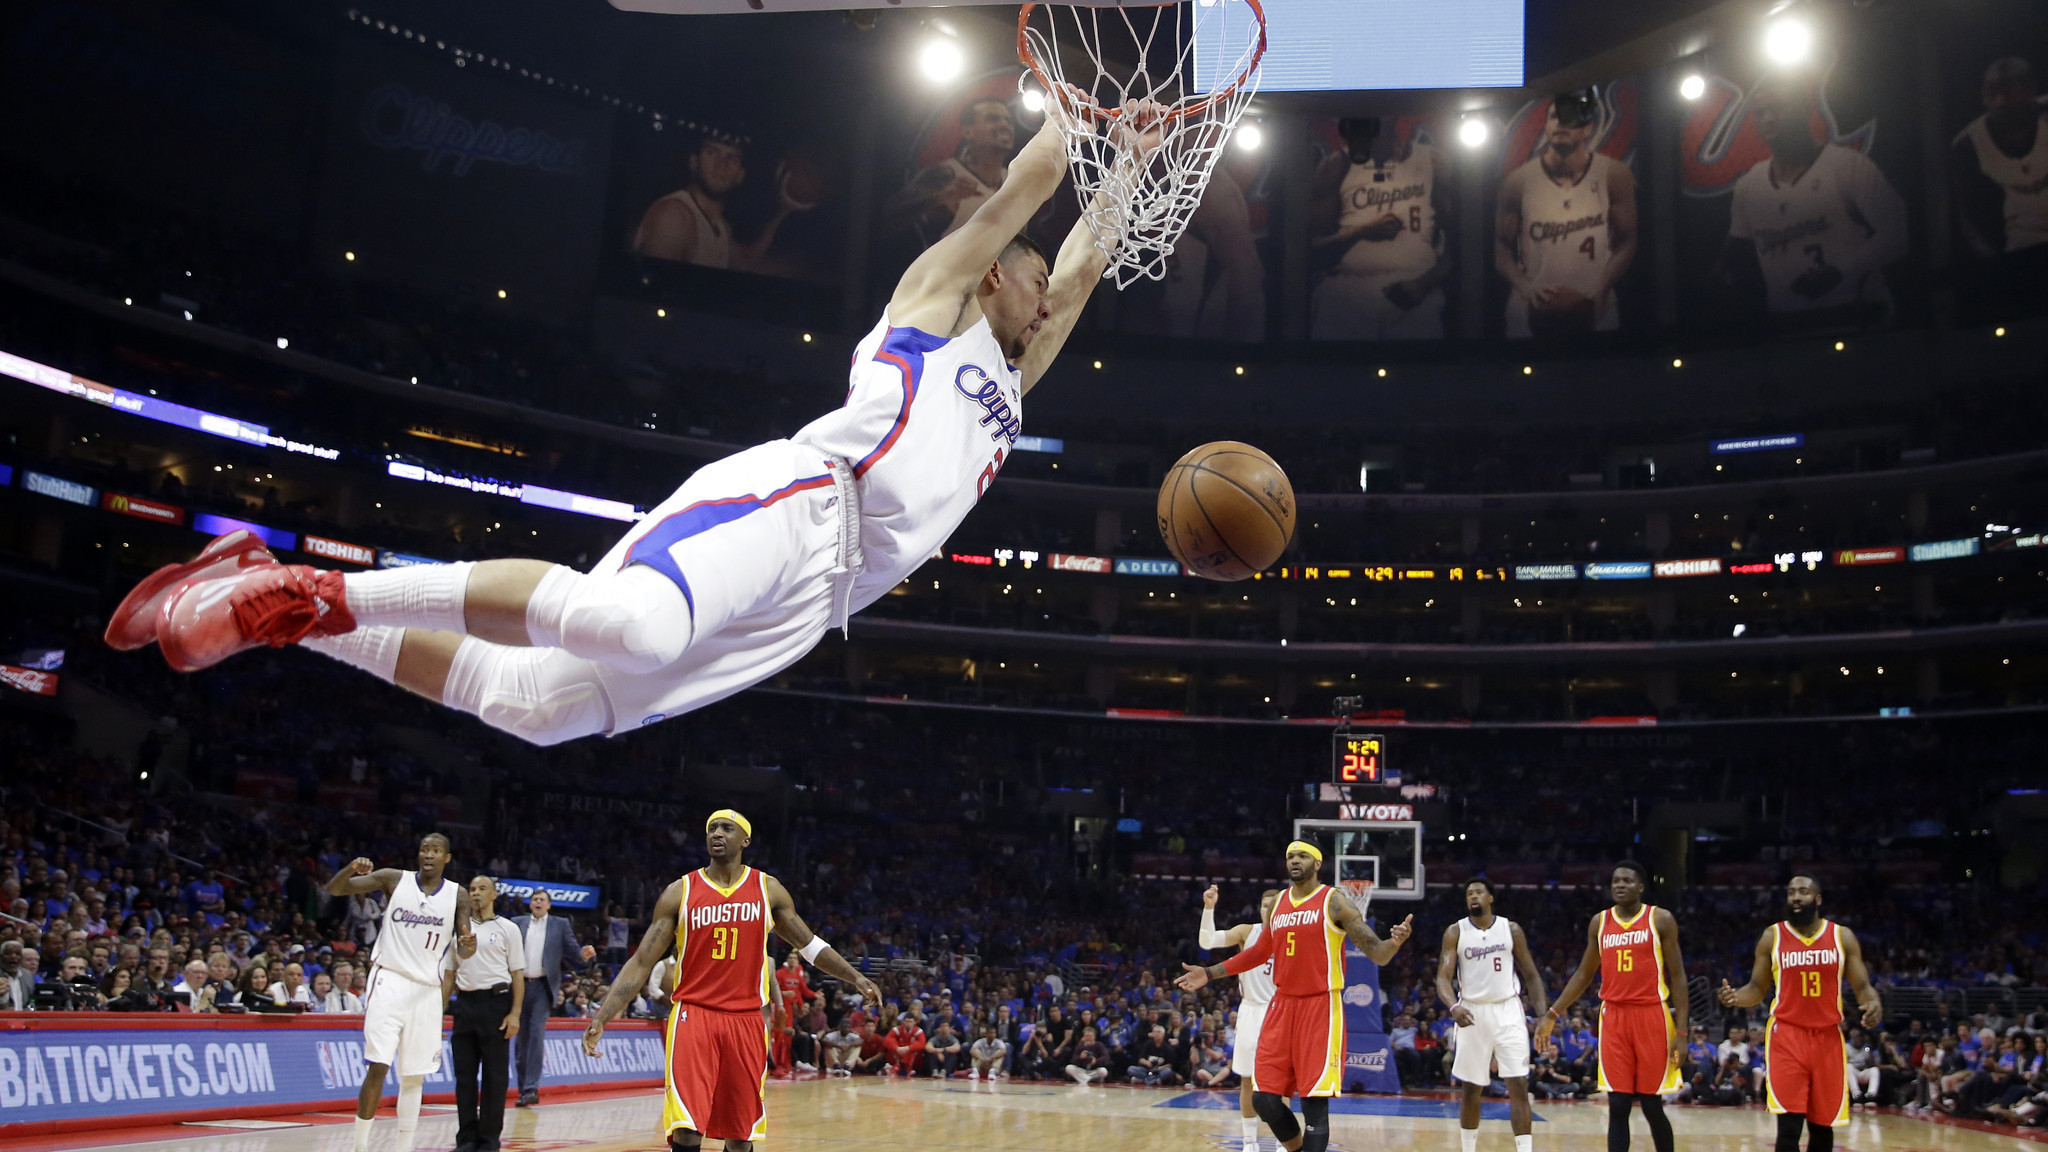 Clippers Austin Rivers To Be Featured On Nba Inside Stuff